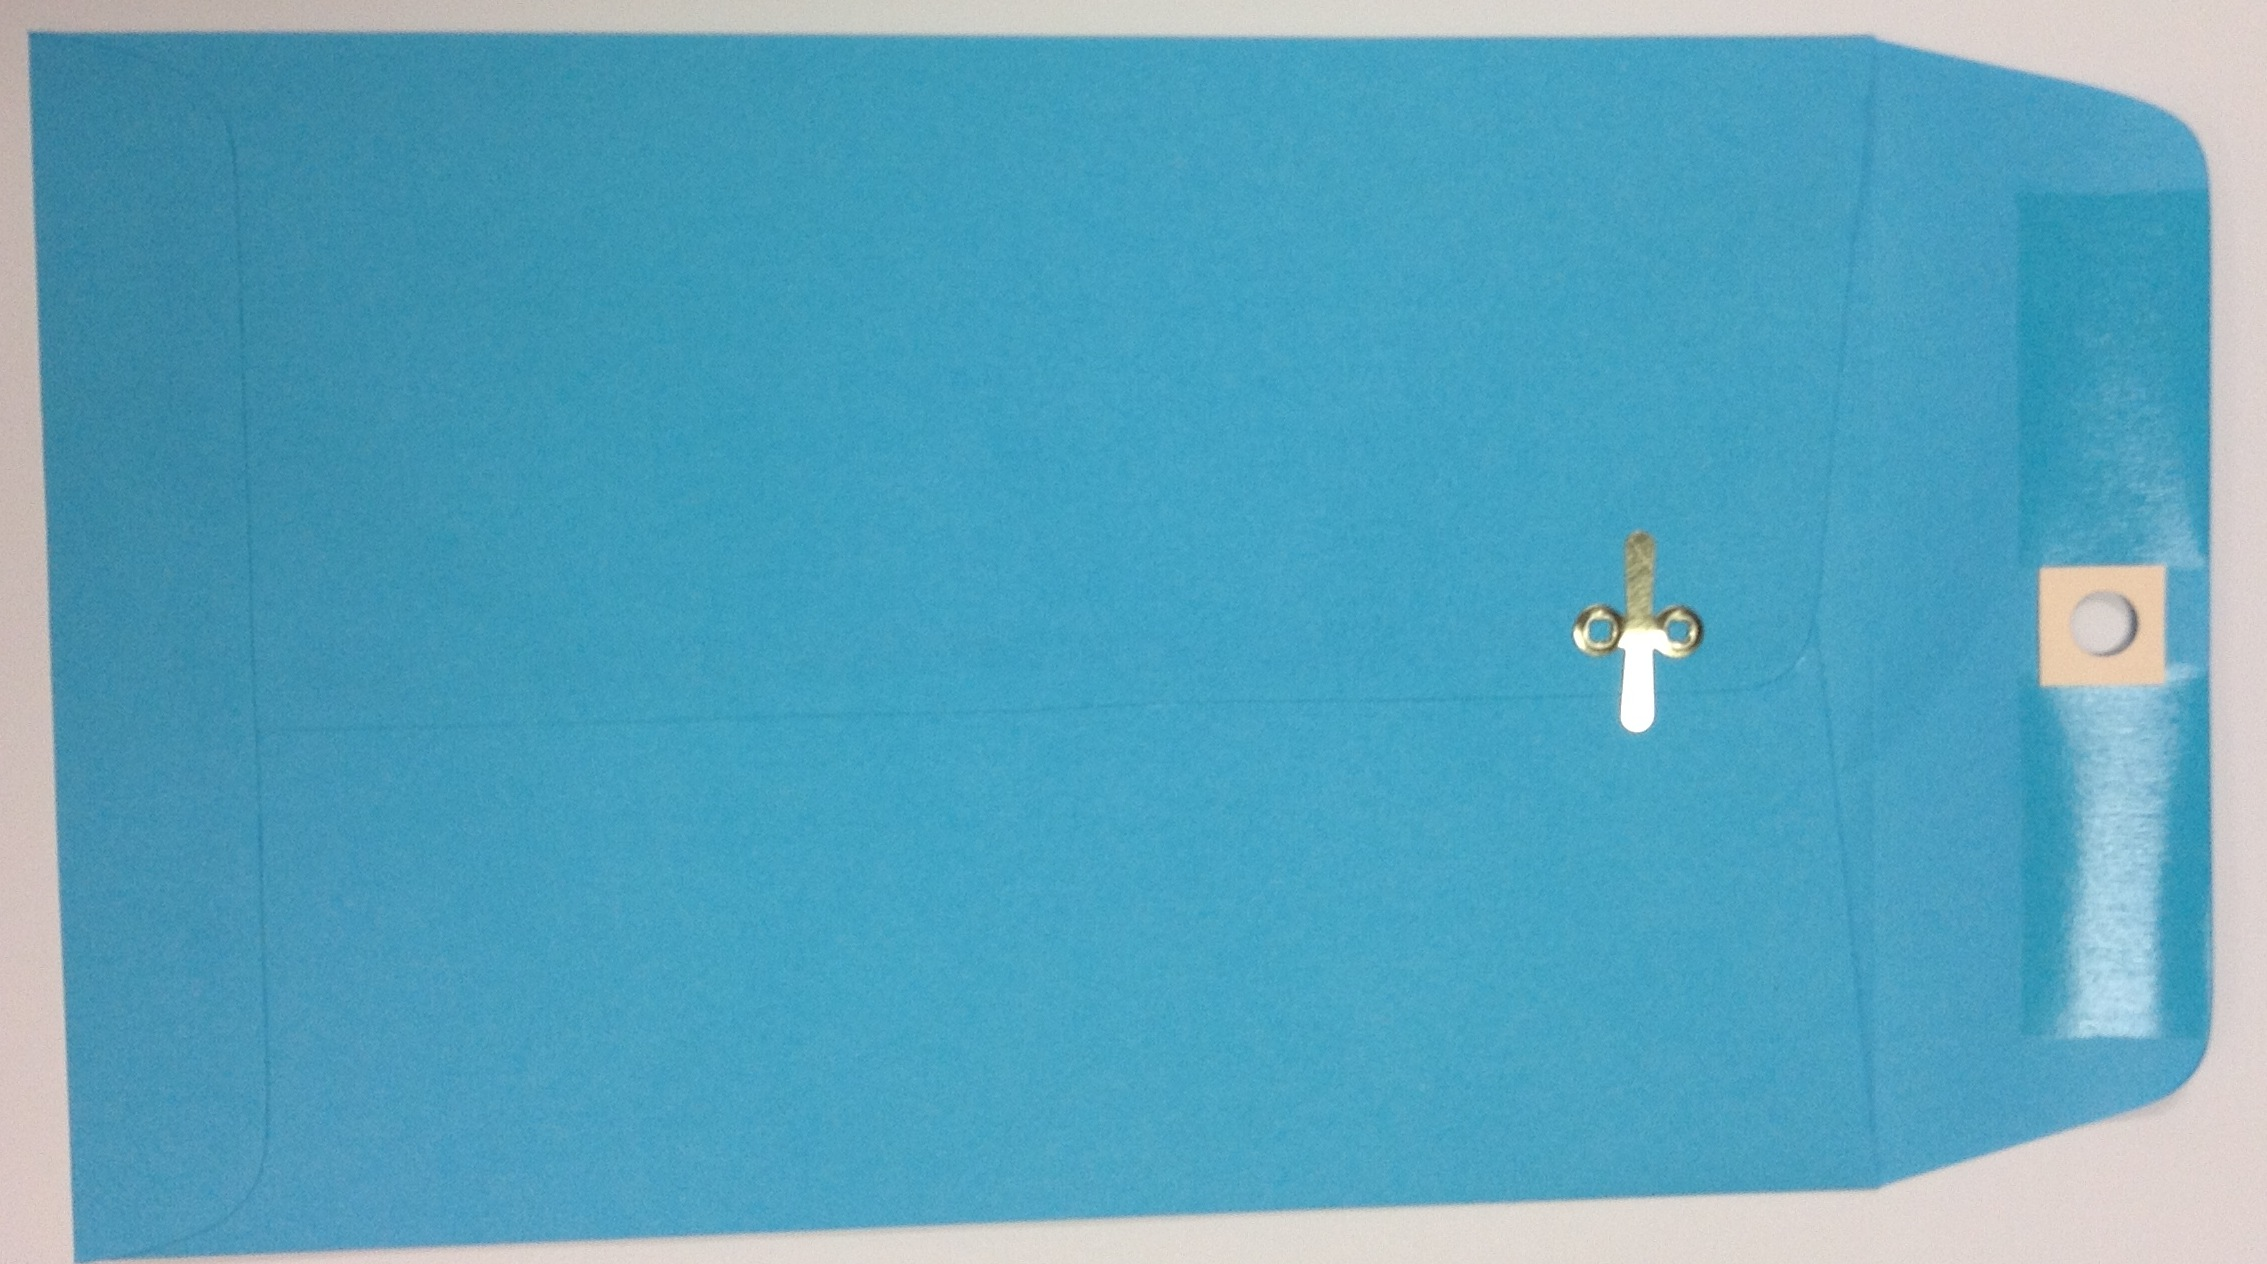 9X12 CLASP ENVELOPES BRIGHT BLUE 10s